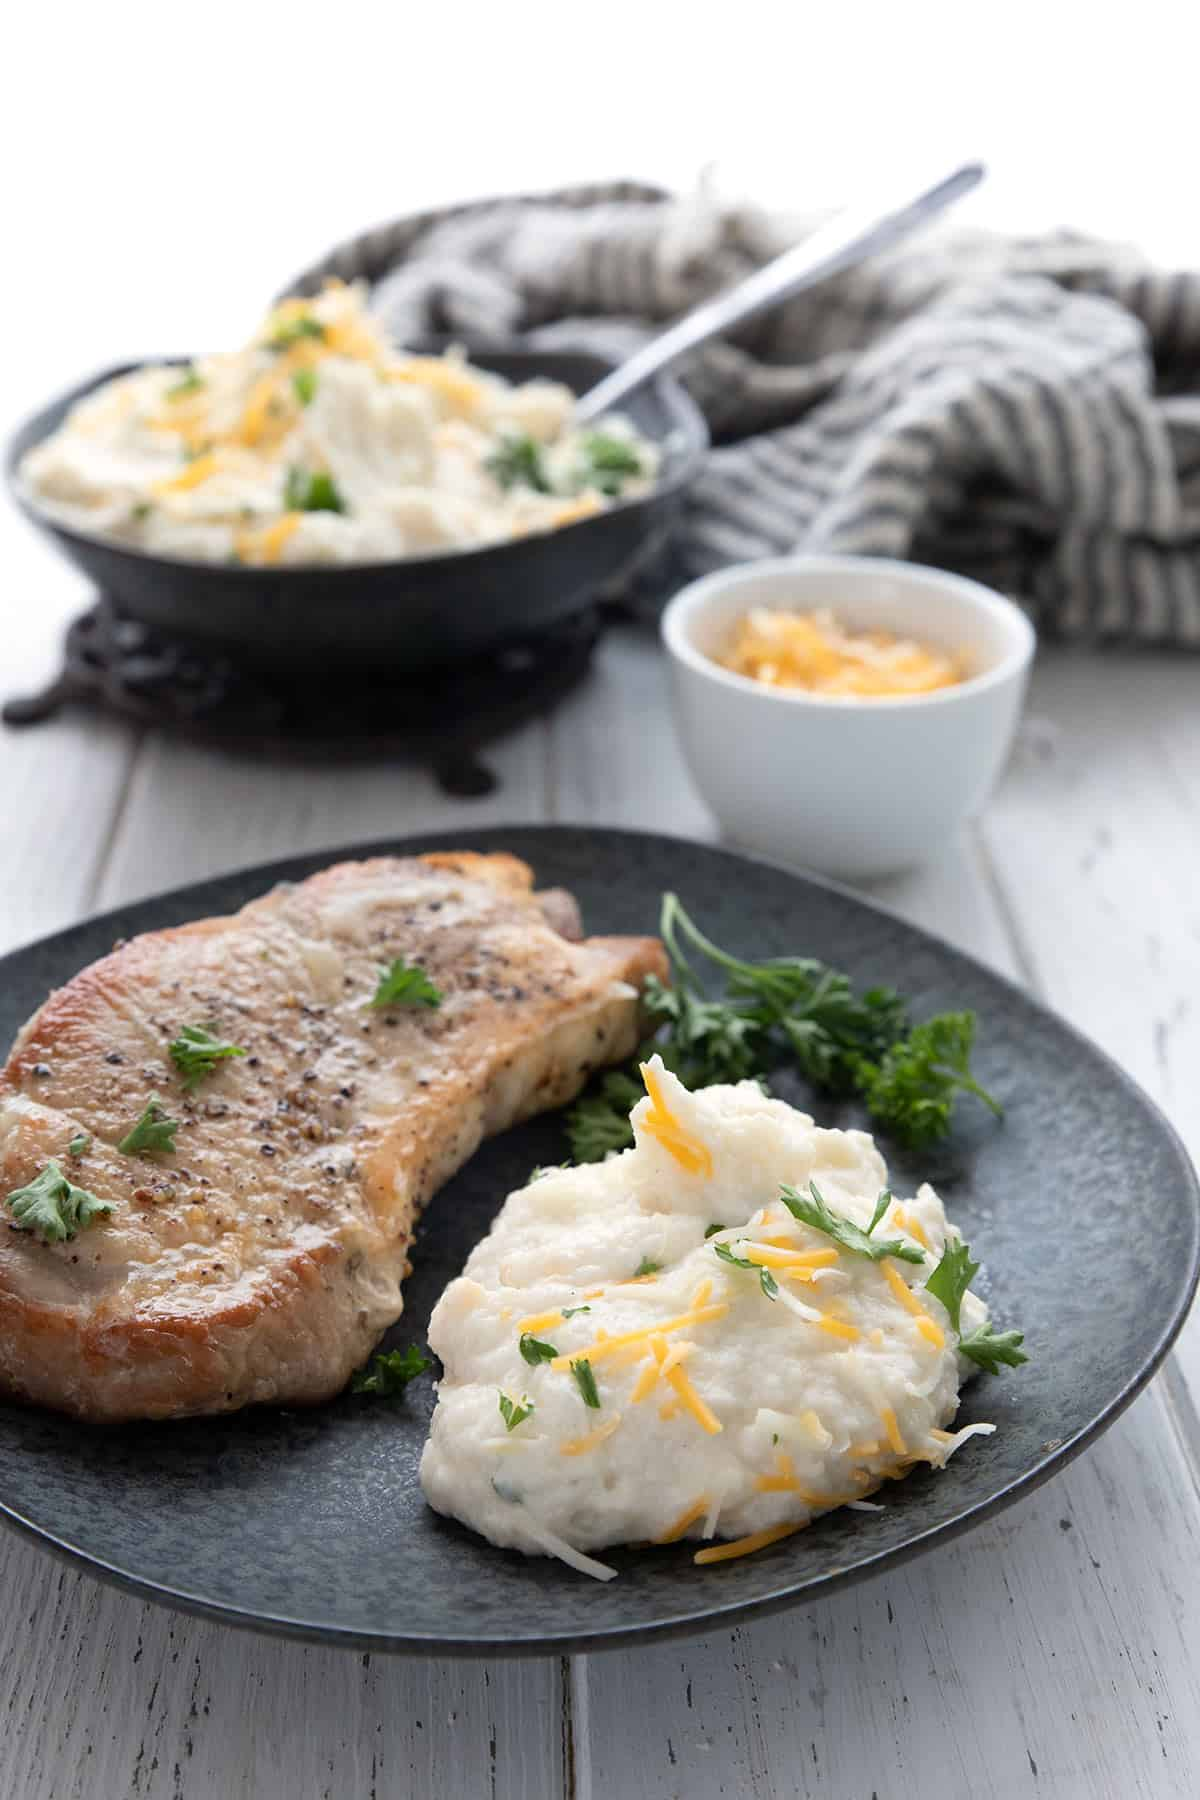 A black plate with a pork chop and a dollop of keto mashed cauliflower on a white table.